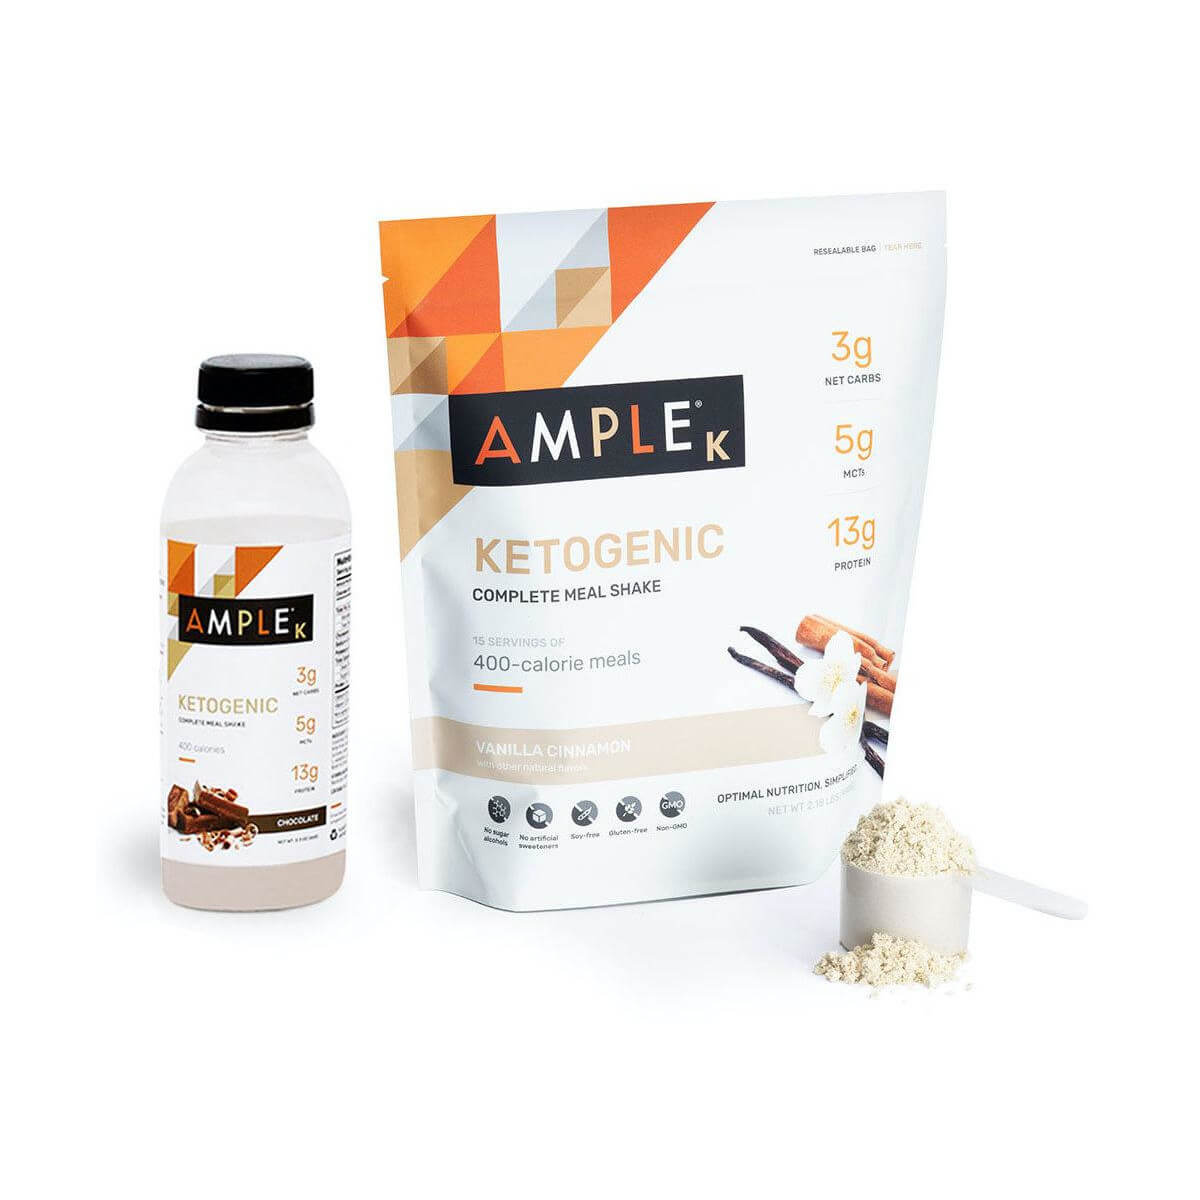 Ample K product image